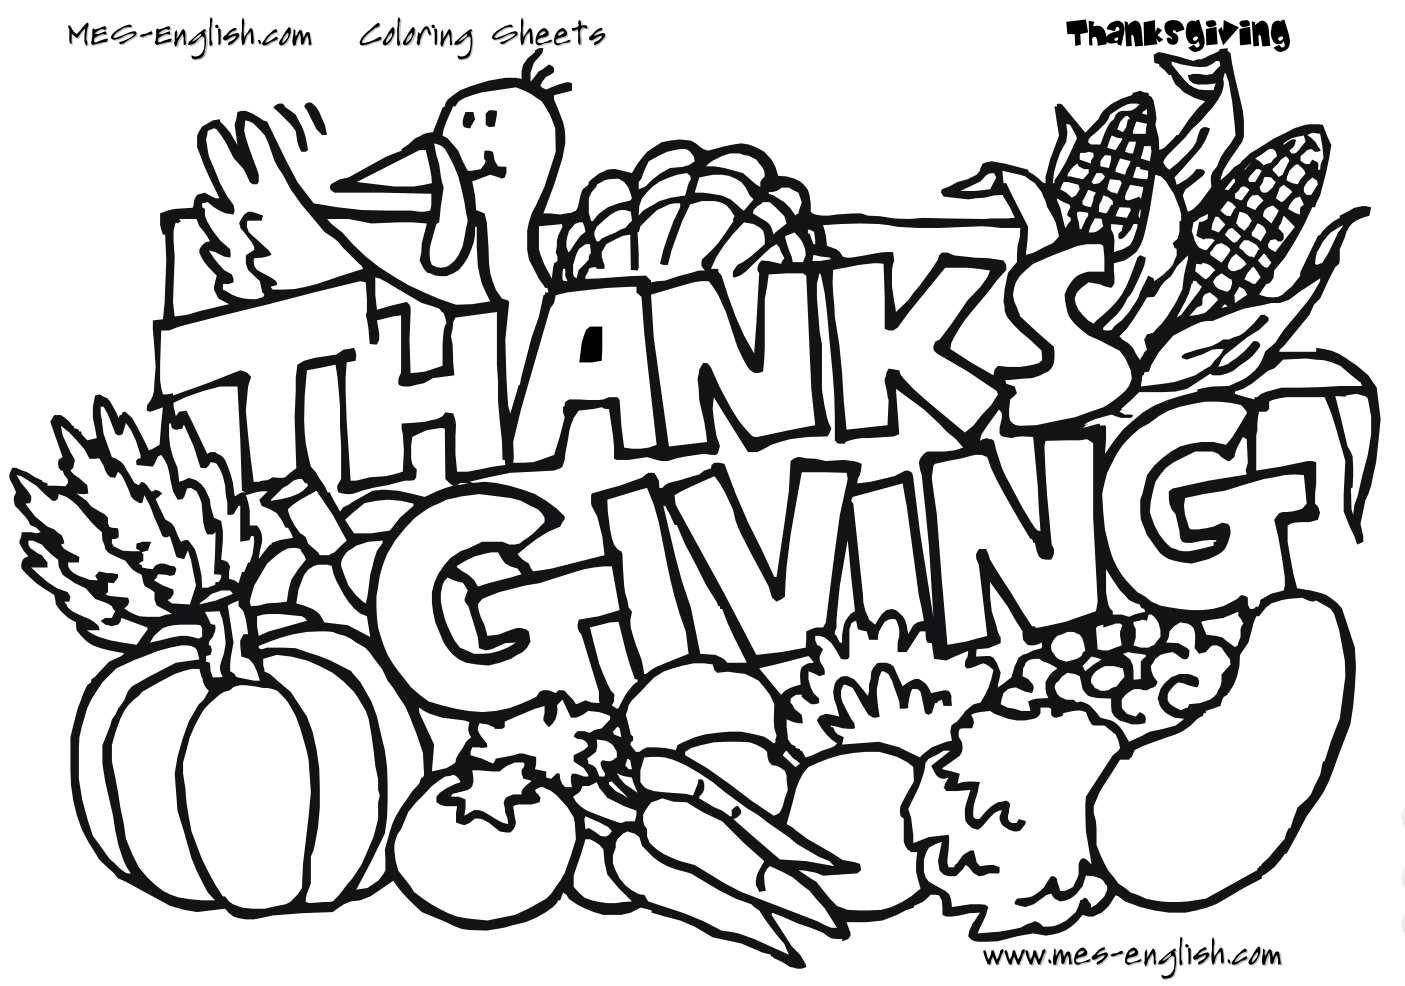 Free Thanksgiving Coloring Pages For Kids - Free Printable Turkey Coloring Pages